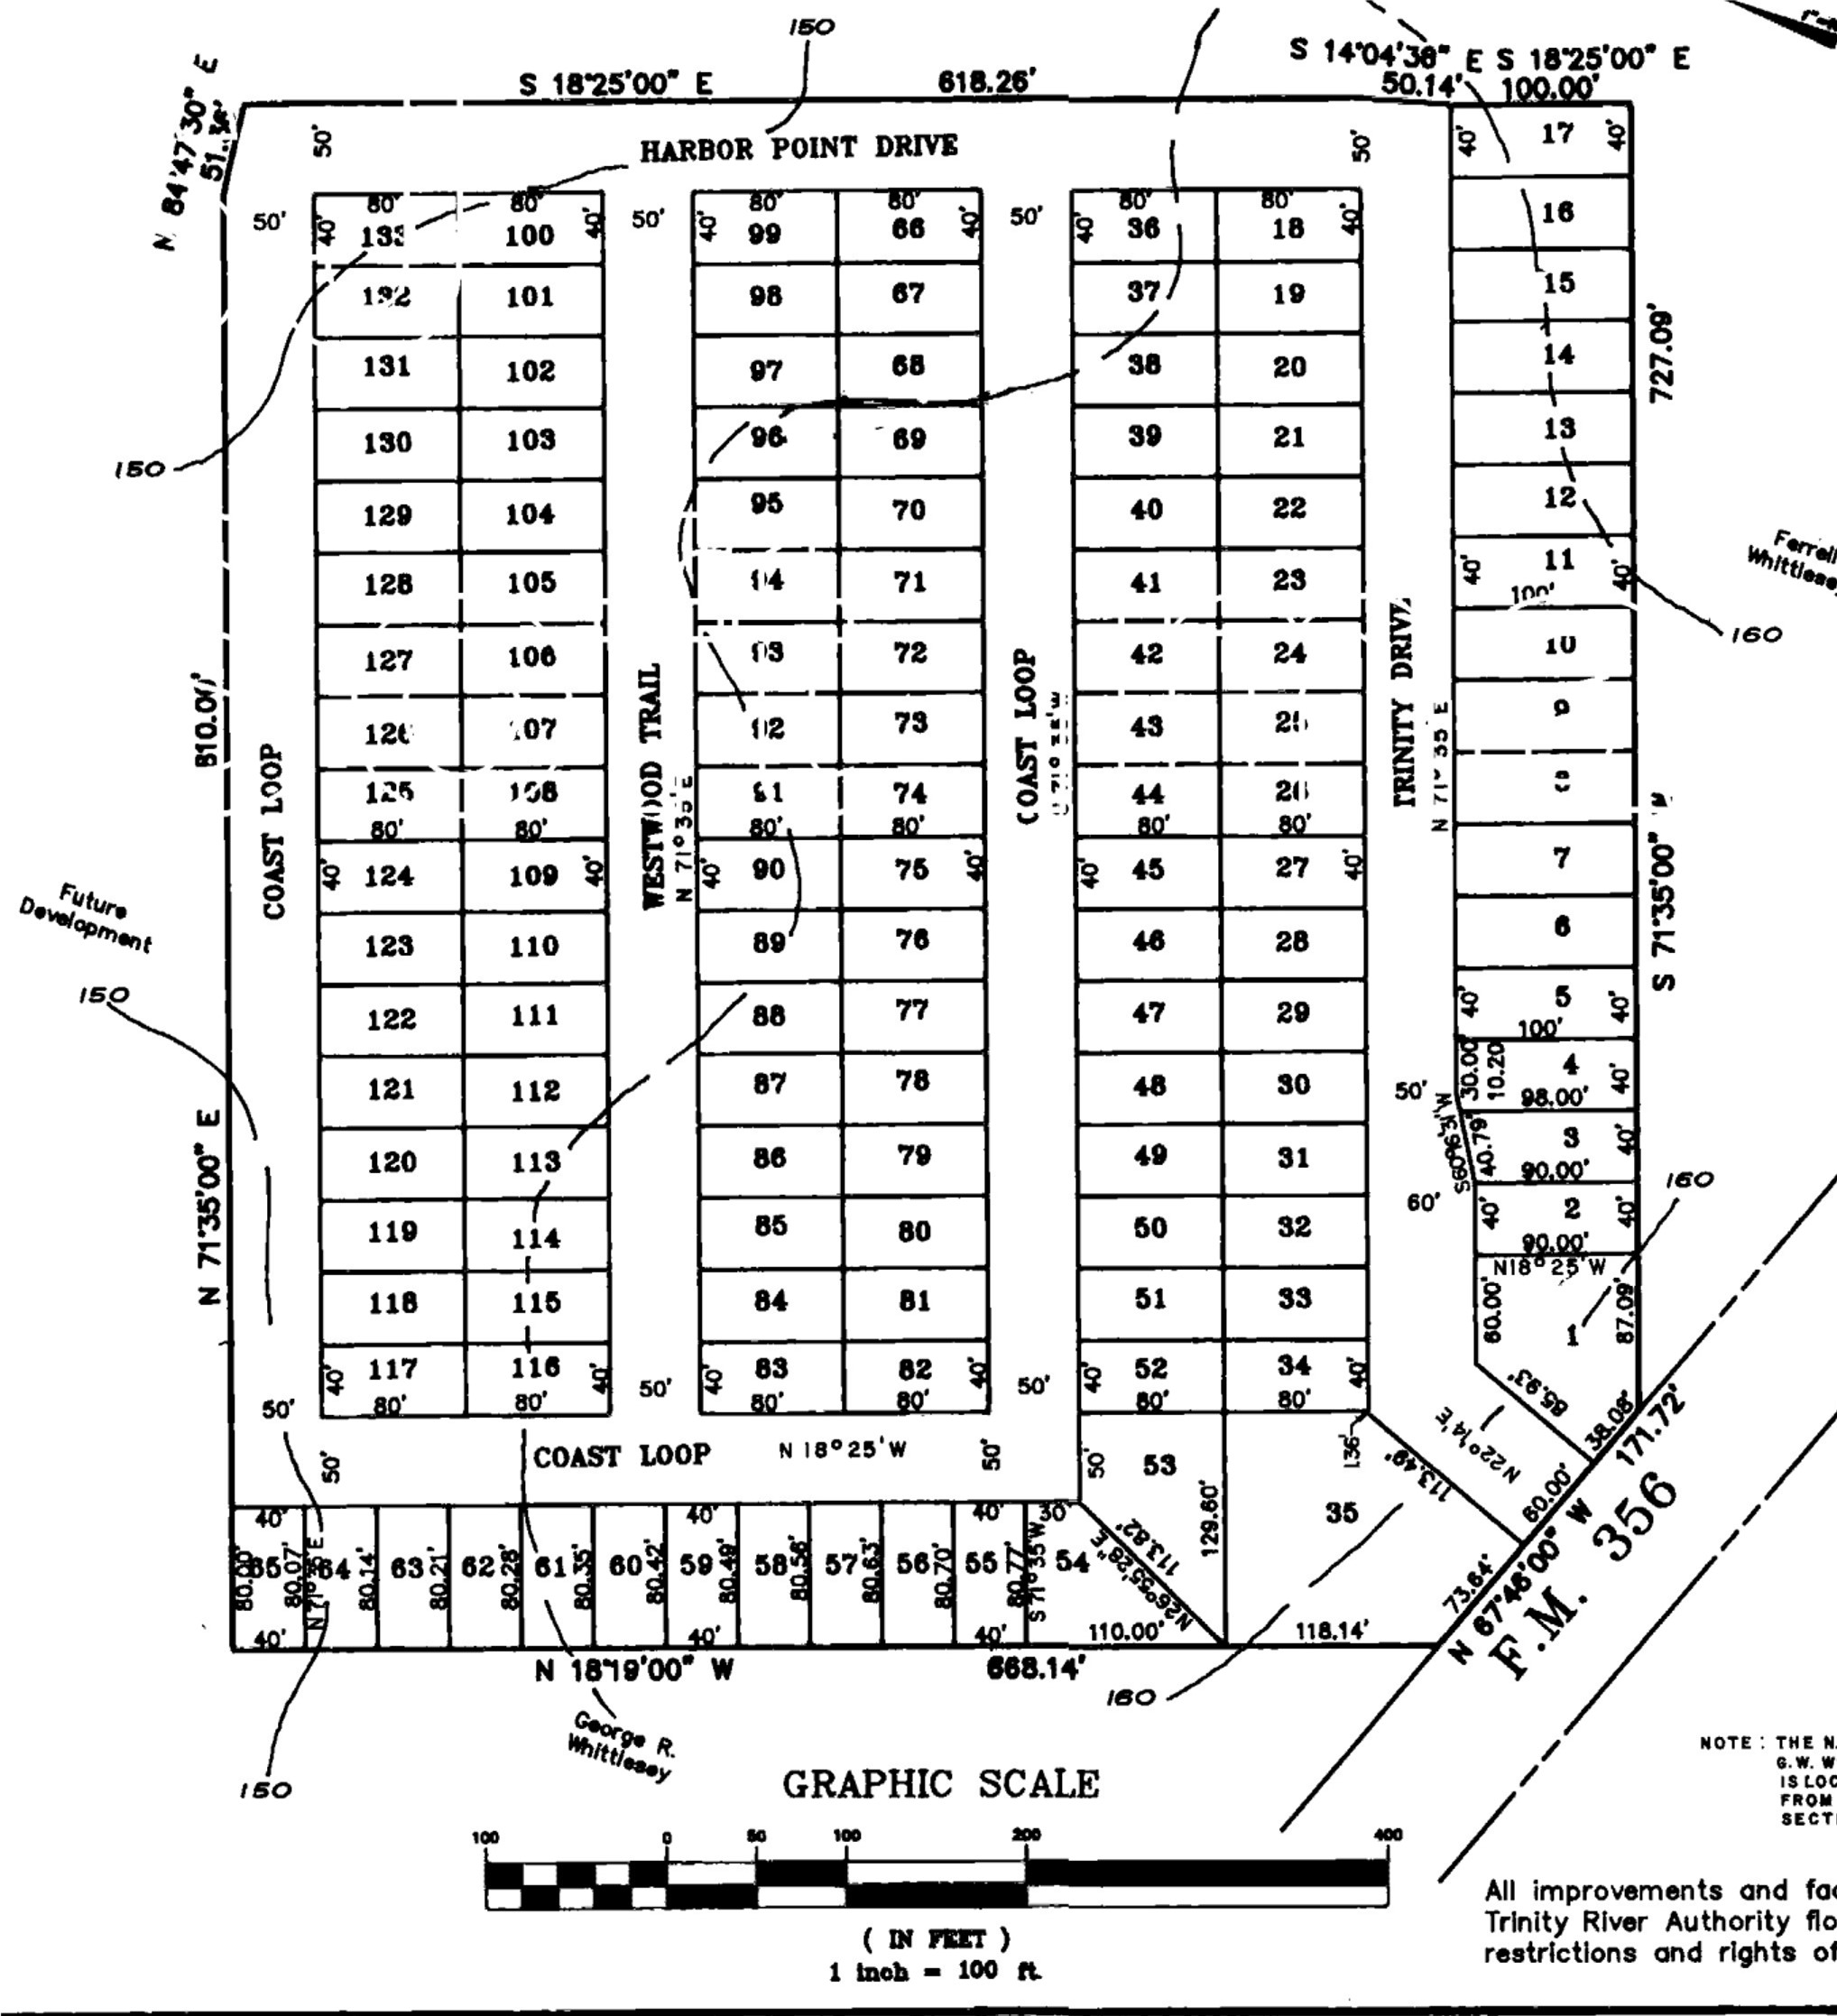 Harbor Point Resort Property Plat Section A